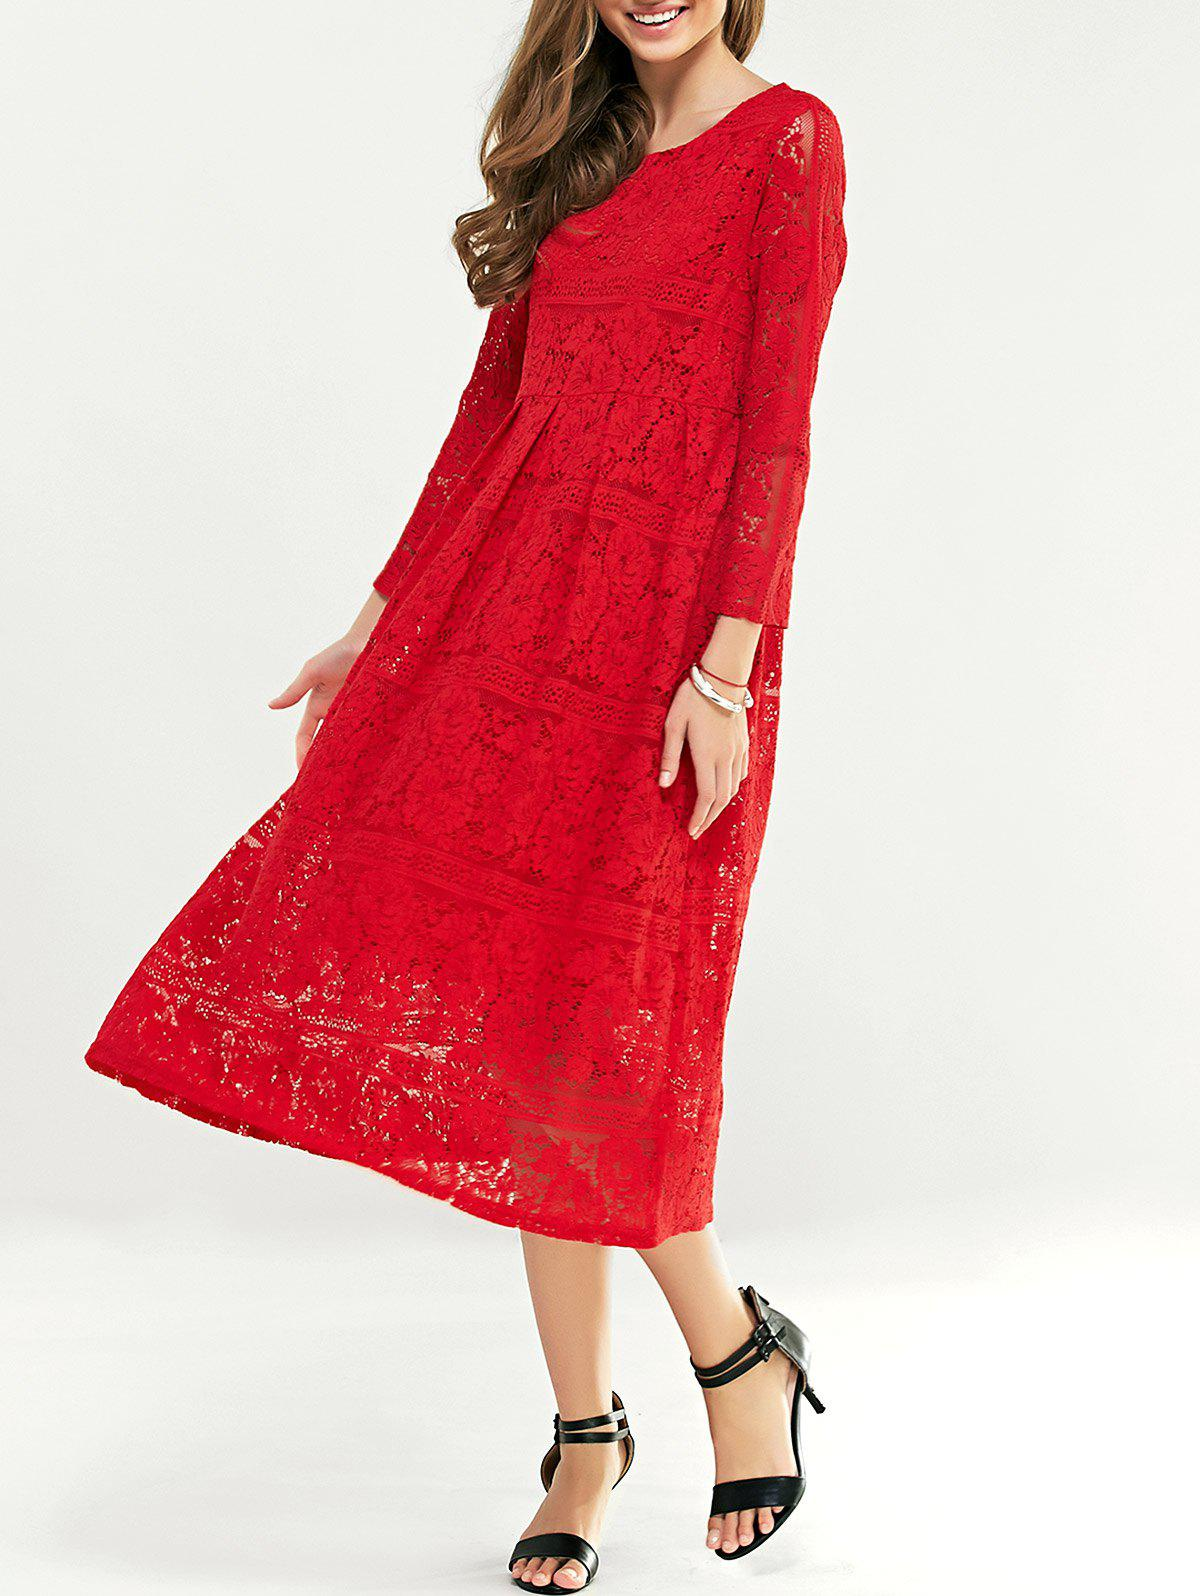 Oversized  Chic Long Sleeve Pure Color Lace Midi Dress